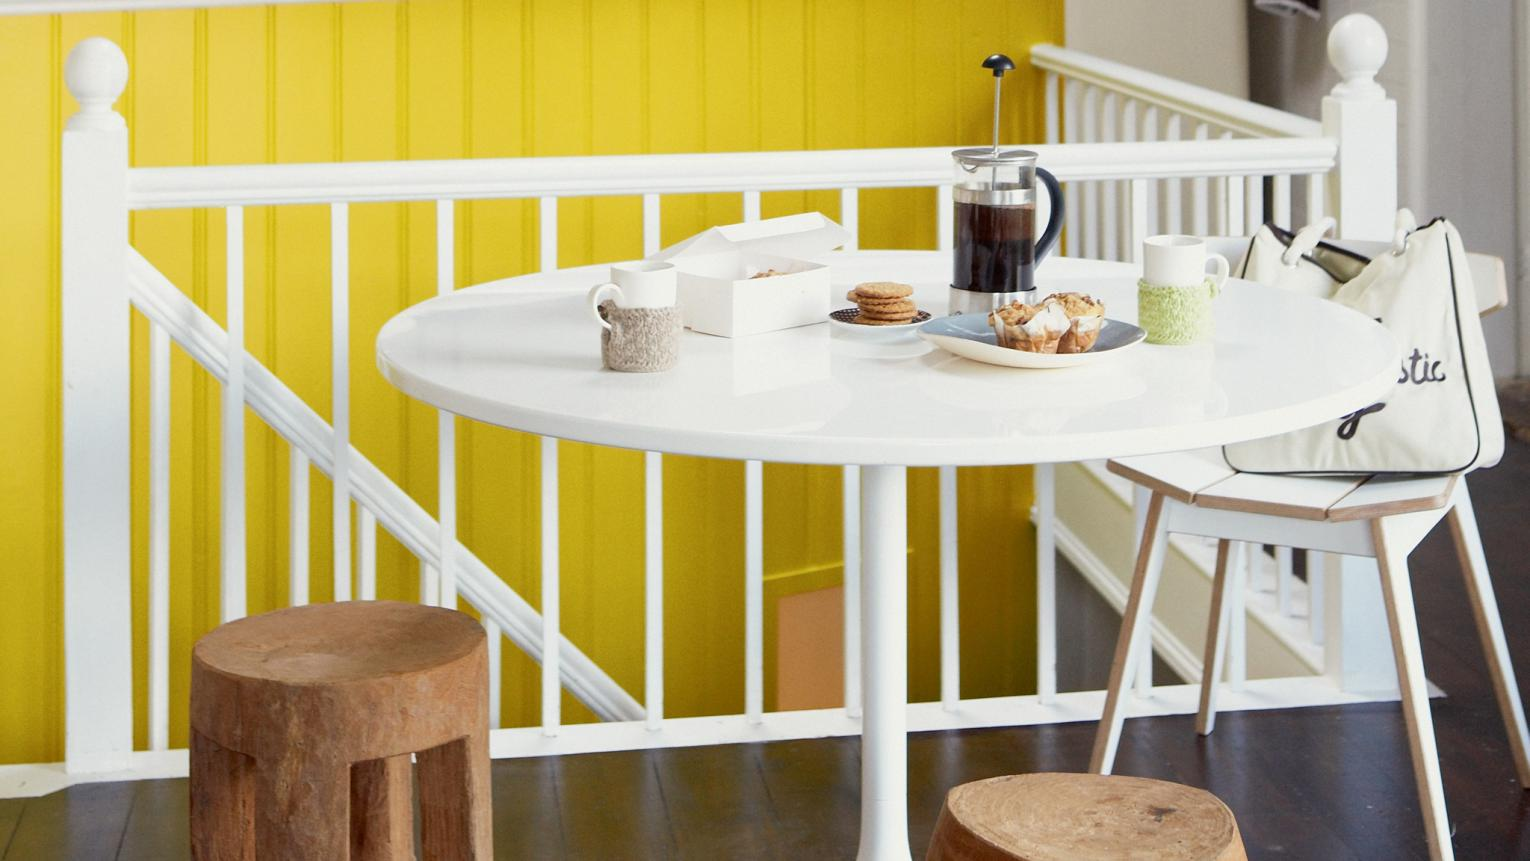 Bright yellow brings fun and energy to this white kitchen.